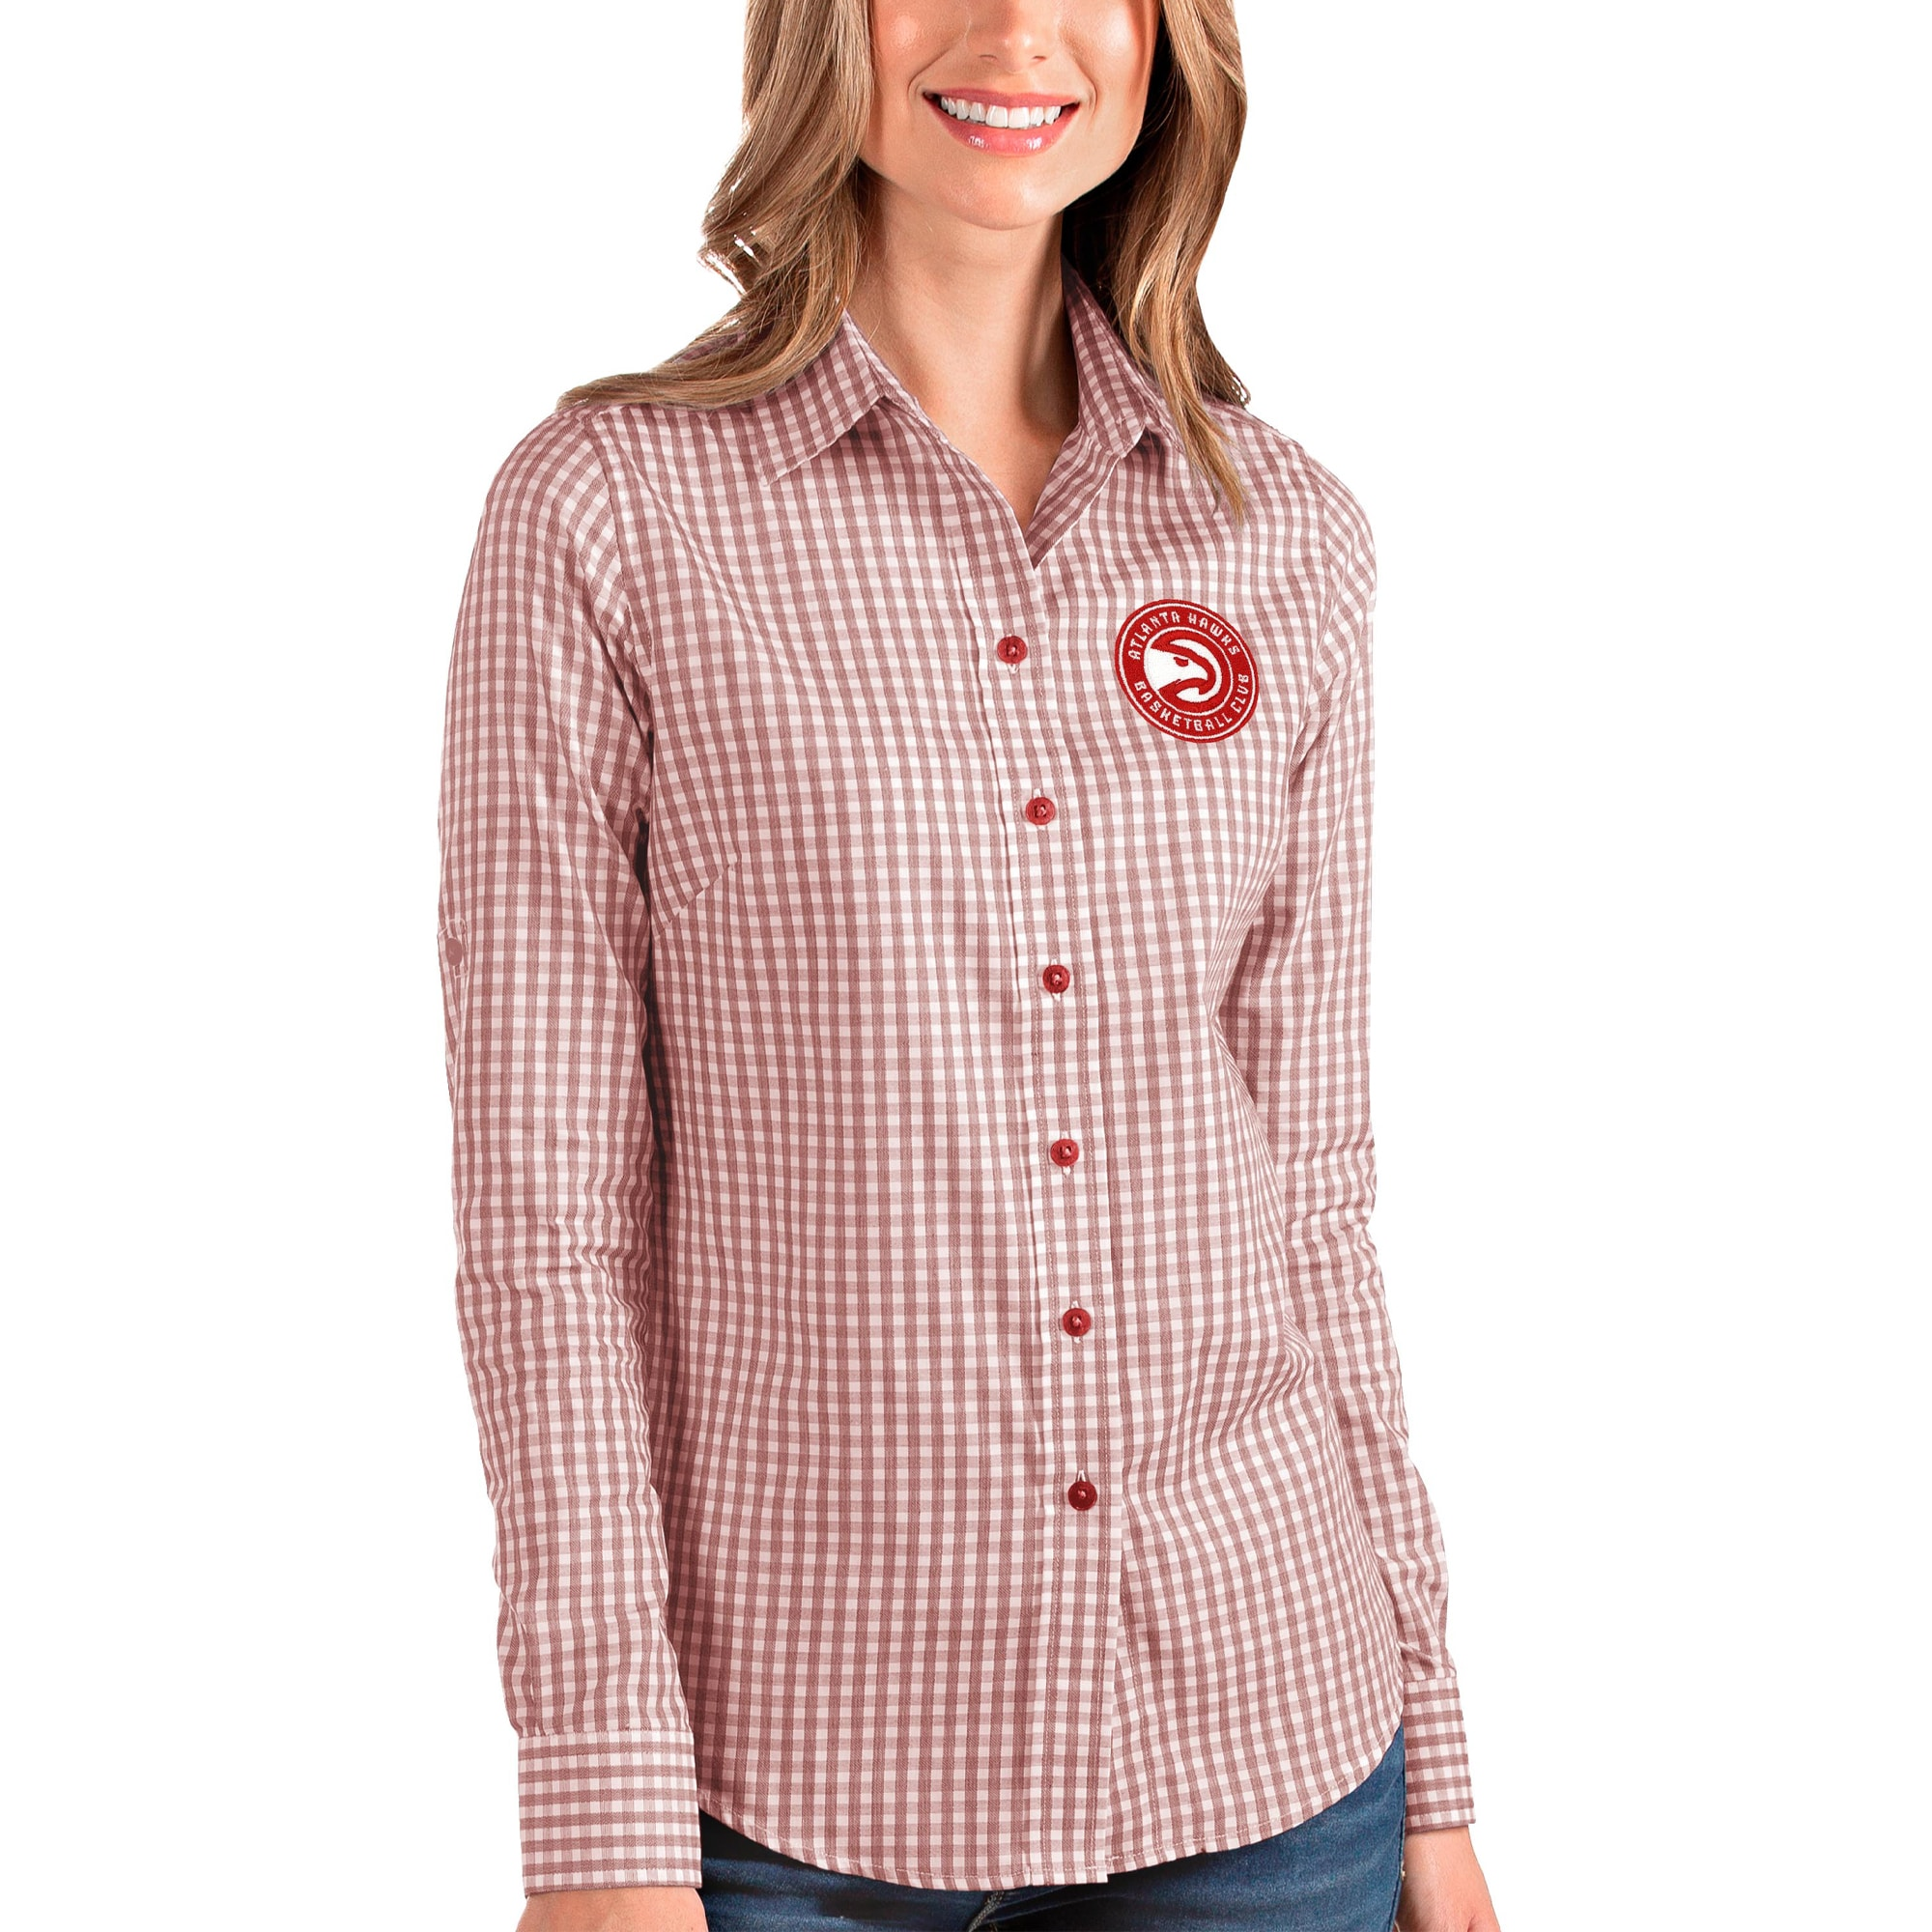 Atlanta Hawks Antigua Women's Structure Button-Up Long Sleeve Shirt - Red/White